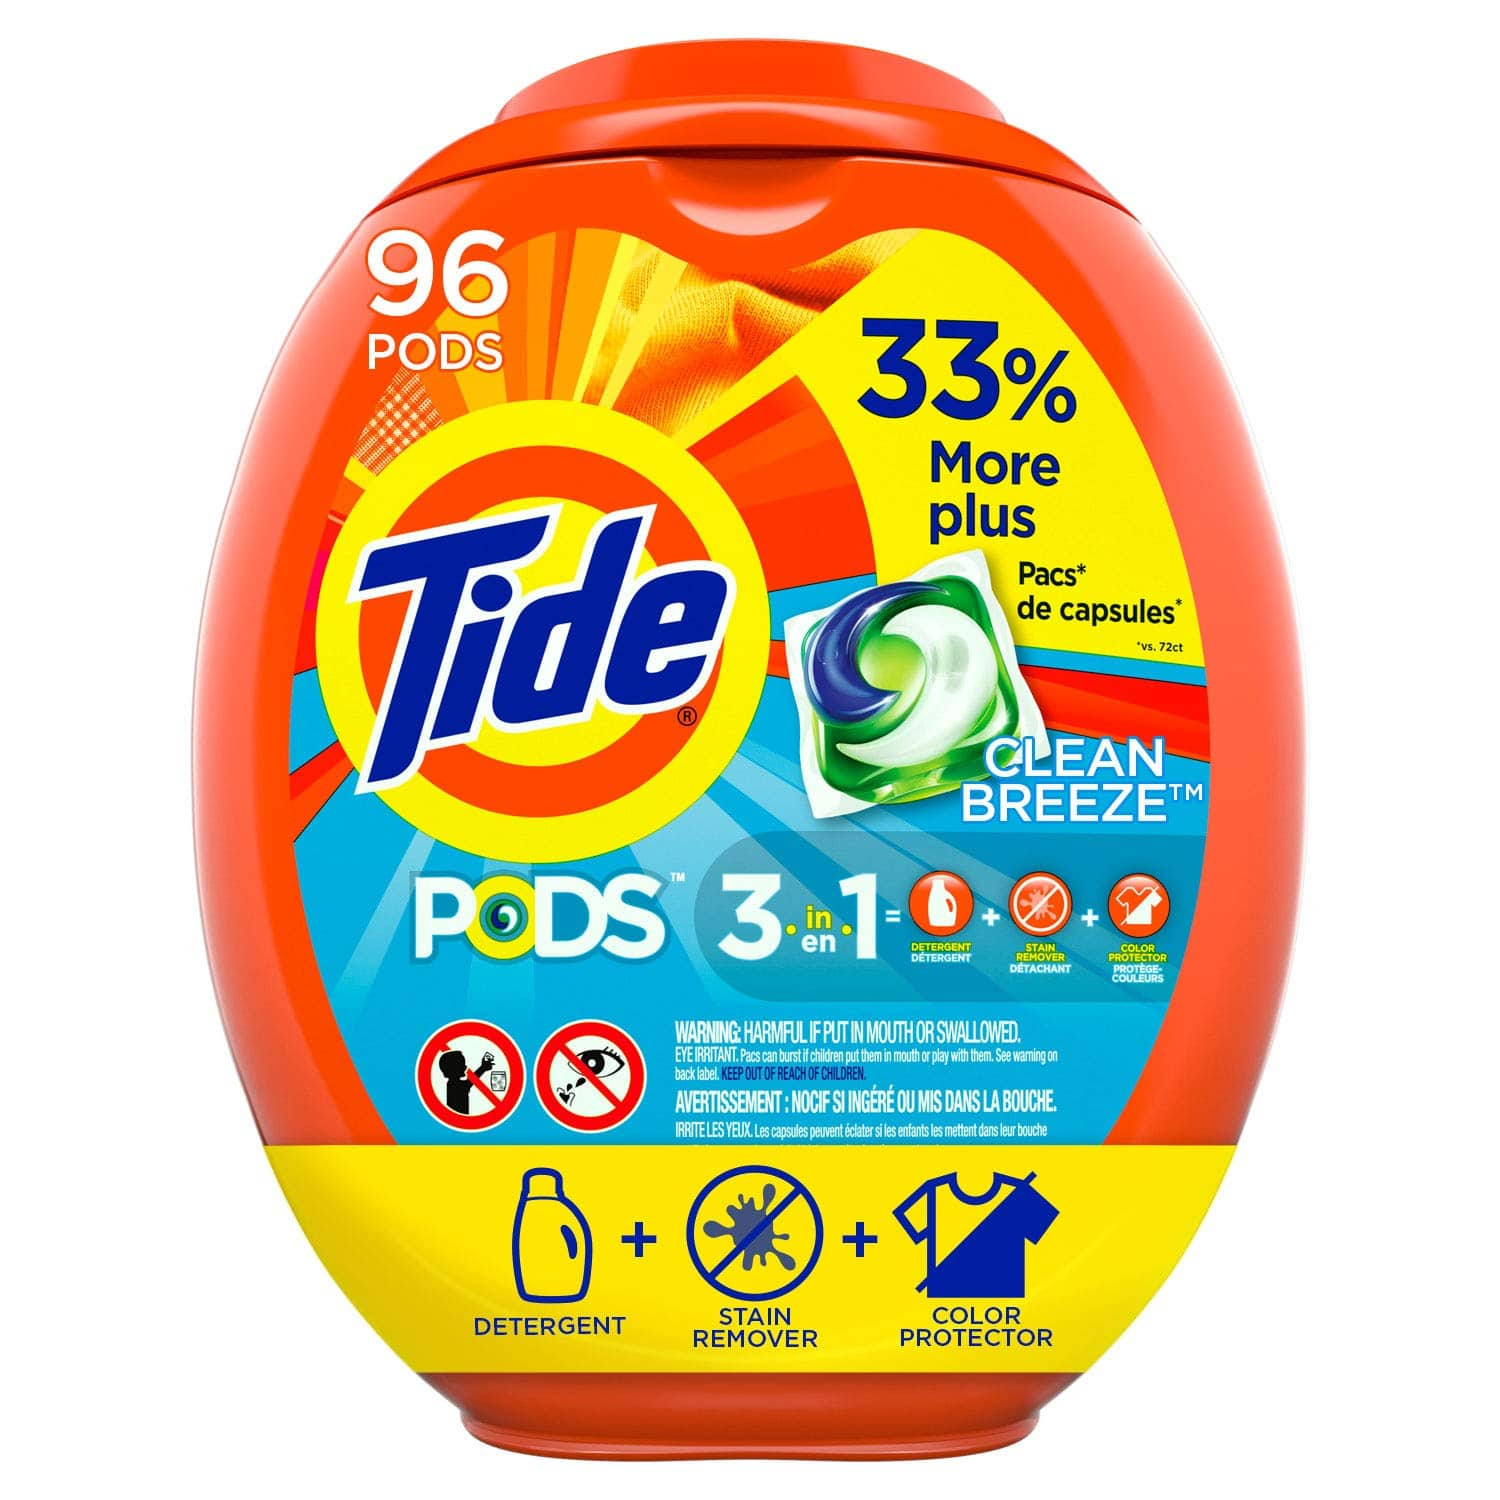 3 Tubs of 96 Tide PODS Laundry Detergent Liquid Pacs, HE Compatible $51.10 or $44.67 W/ S&S + free shipping